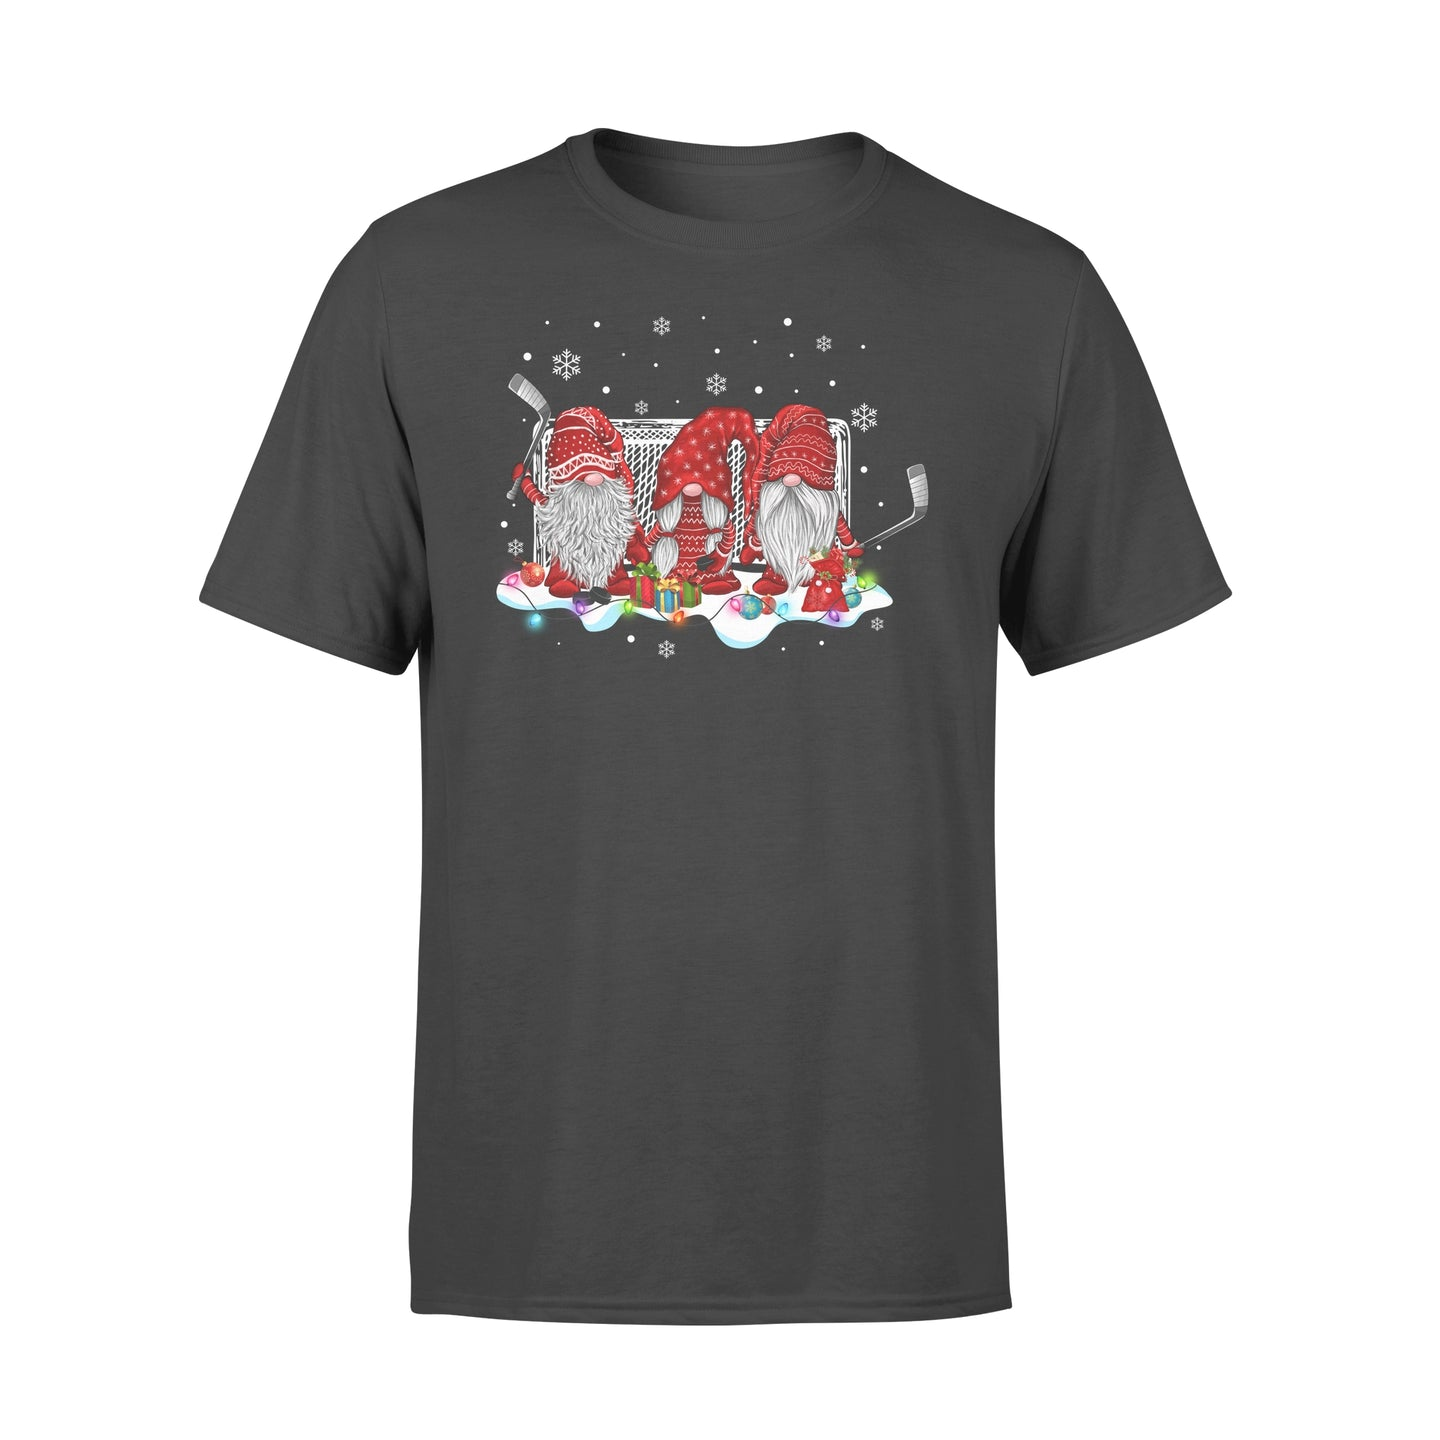 Funny Sport Ice Hockey Gnome Christmas Family Xmas Friends Gnomies - Standard T-shirt Apparel S / Black